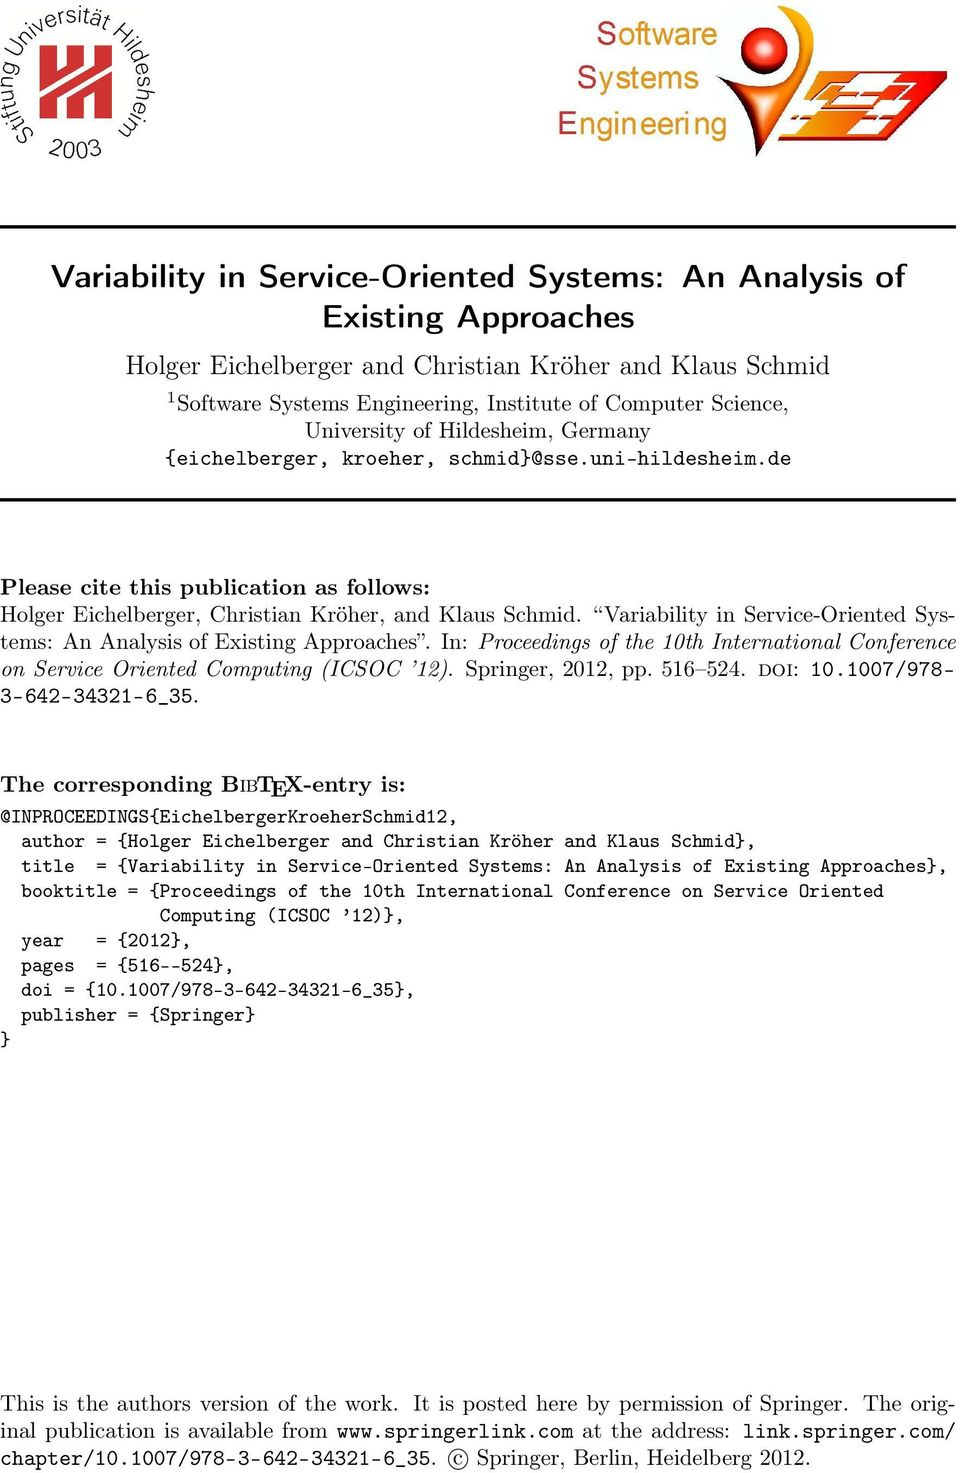 Variability in -Oriented Systems: An Analysis of Existing Approaches. In: Proceedings of the 10th International Conference on Oriented Computing (ICSOC 12). Springer, 2012, pp. 516 524. doi: 10.